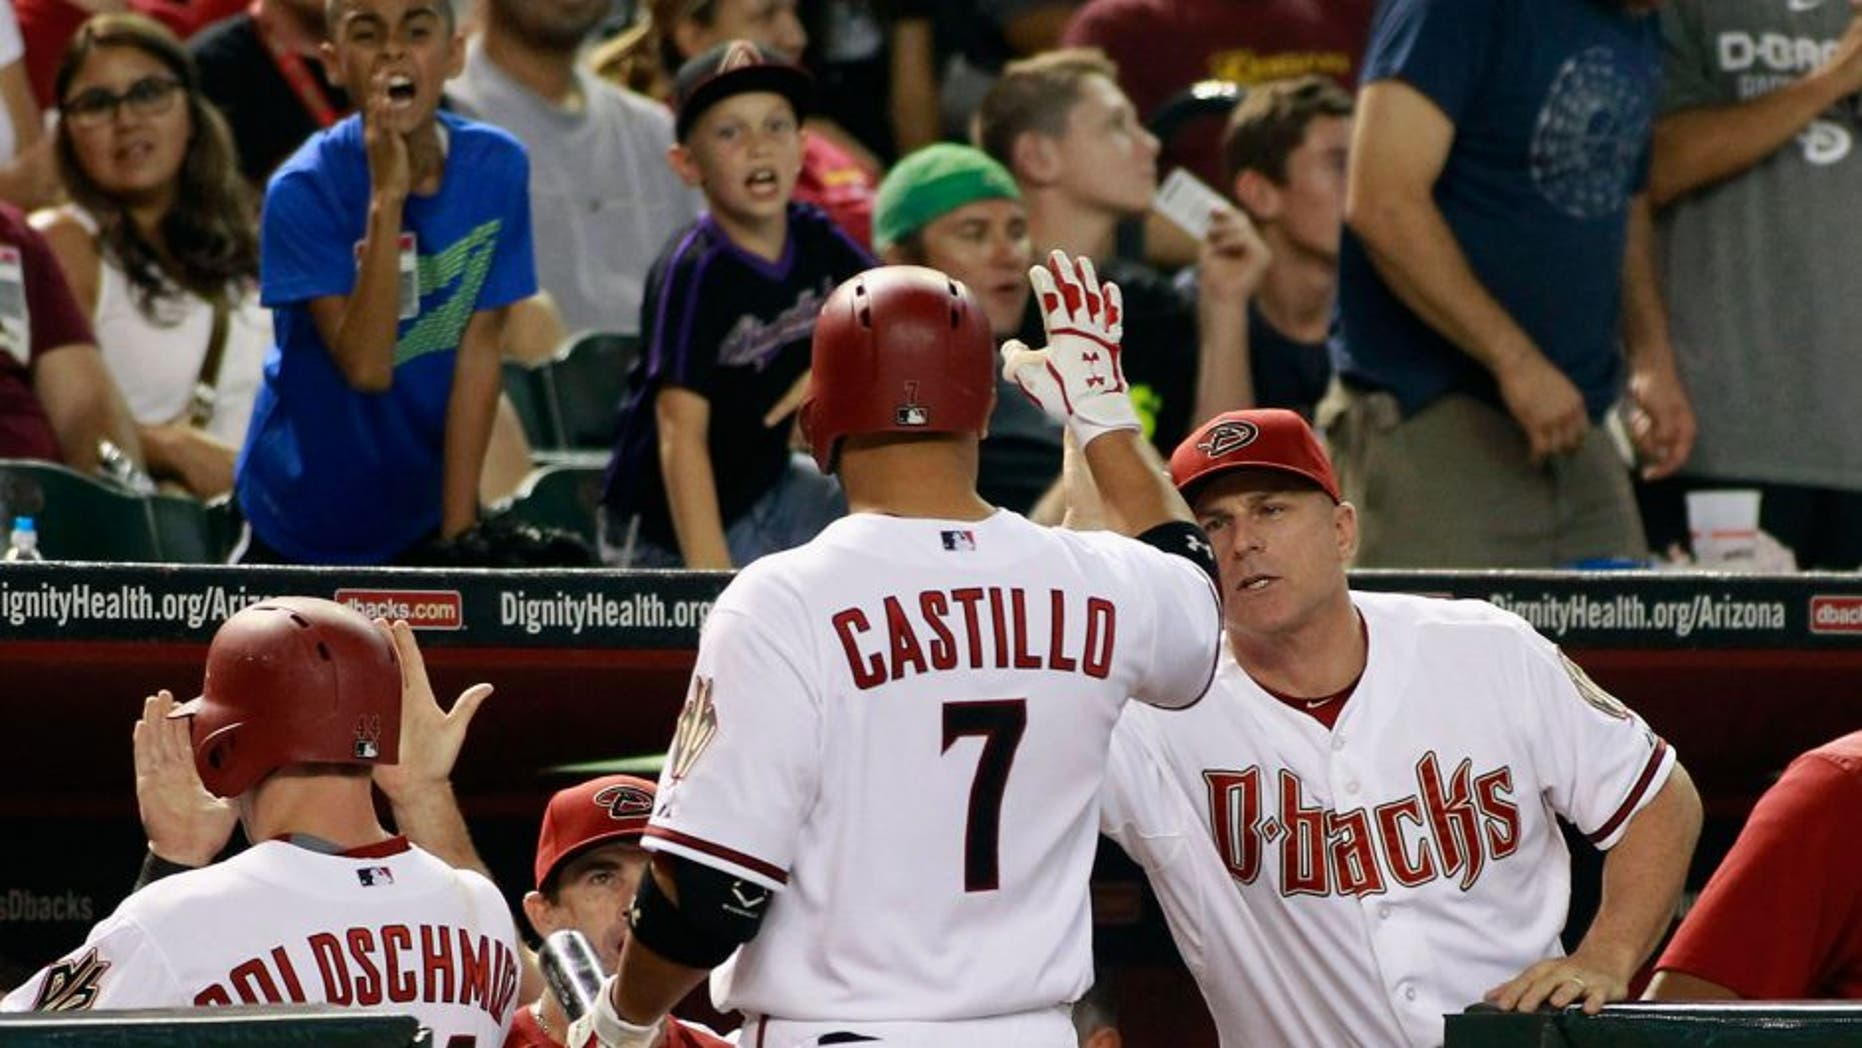 PHOENIX, AZ - AUGUST 28: Welington Castillo #7 of the Arizona Diamondbacks is congratulated by manager Chip Hale #3 (R) after hitting a sacrifice fly against the Oakland Athletics to score Paul Goldschmidt #44 (L) during the sixth inning of a MLB game at Chase Field on August 28, 2015 in Phoenix, Arizona. The Diamondbacks defeated the Athletics 6-4. (Photo by Ralph Freso/Getty Images)